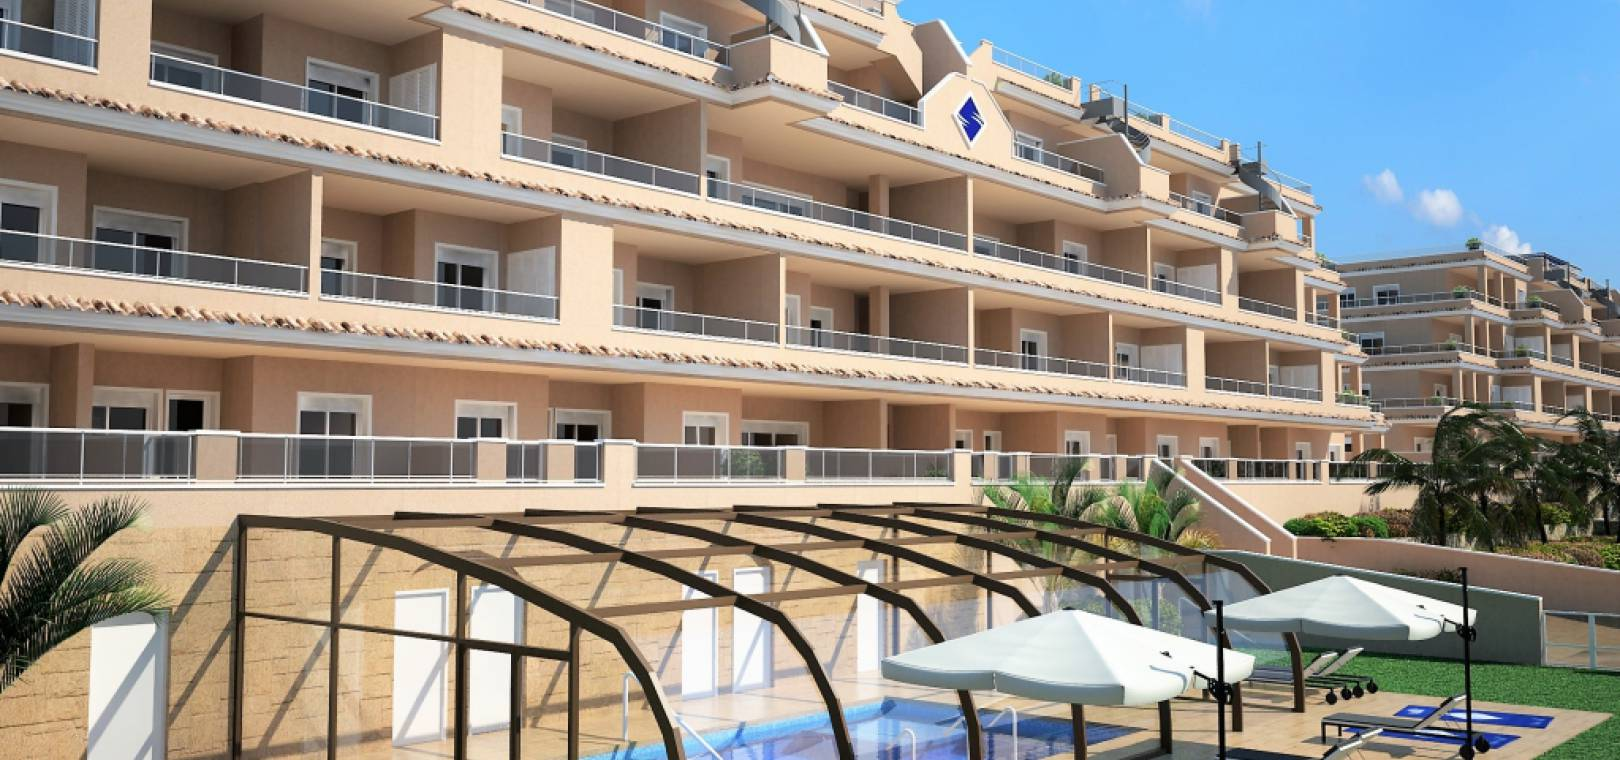 Vista Azul Villamartin New Build Modern Apartments For Sale 1102